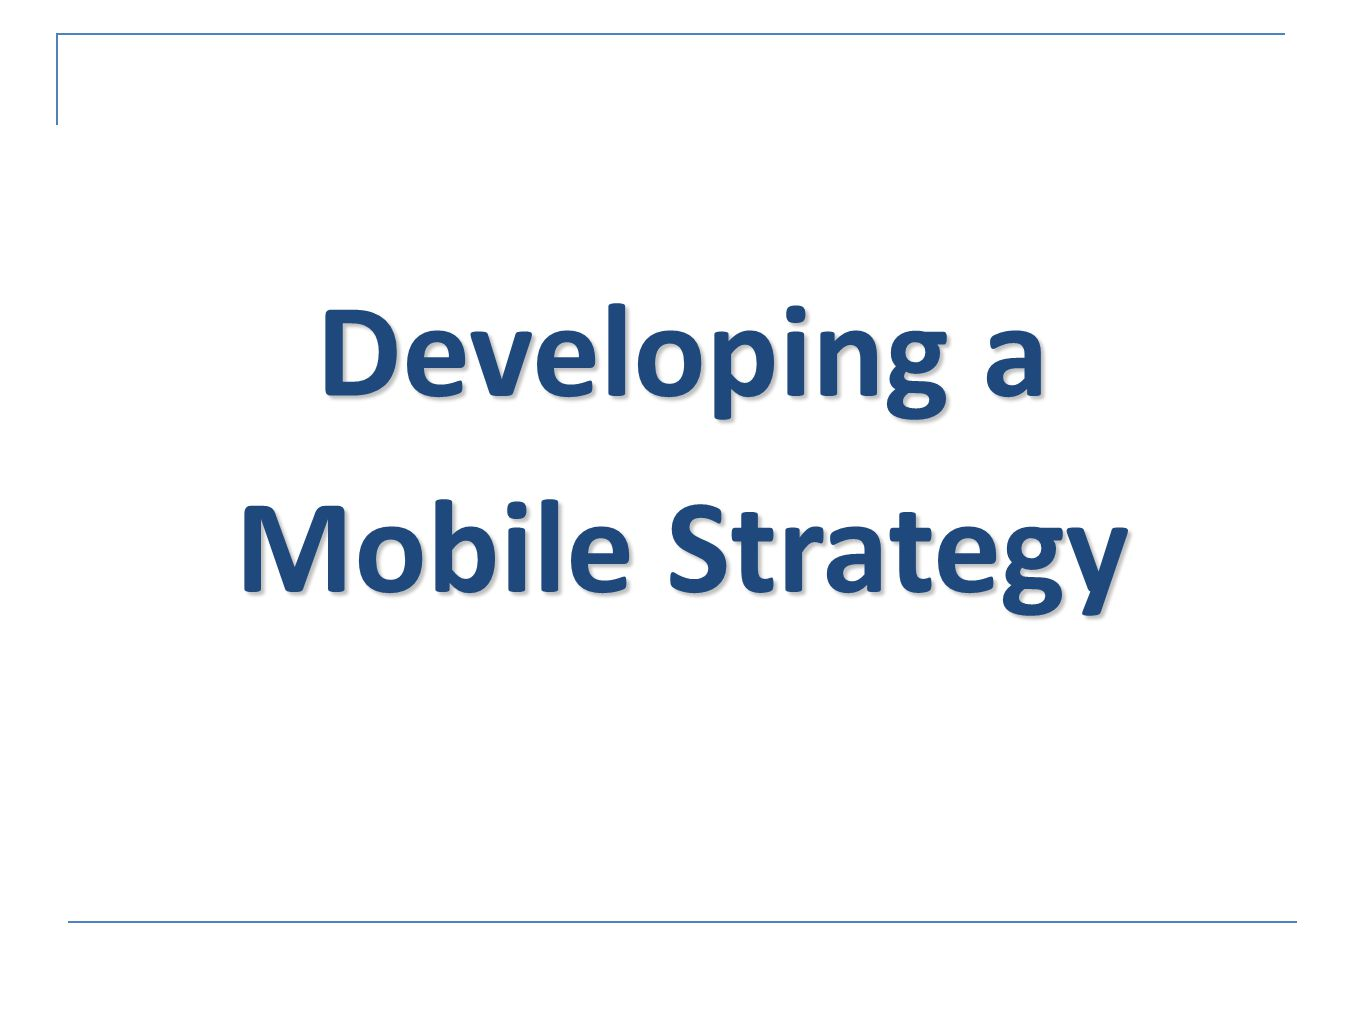 Developing a Mobile Strategy